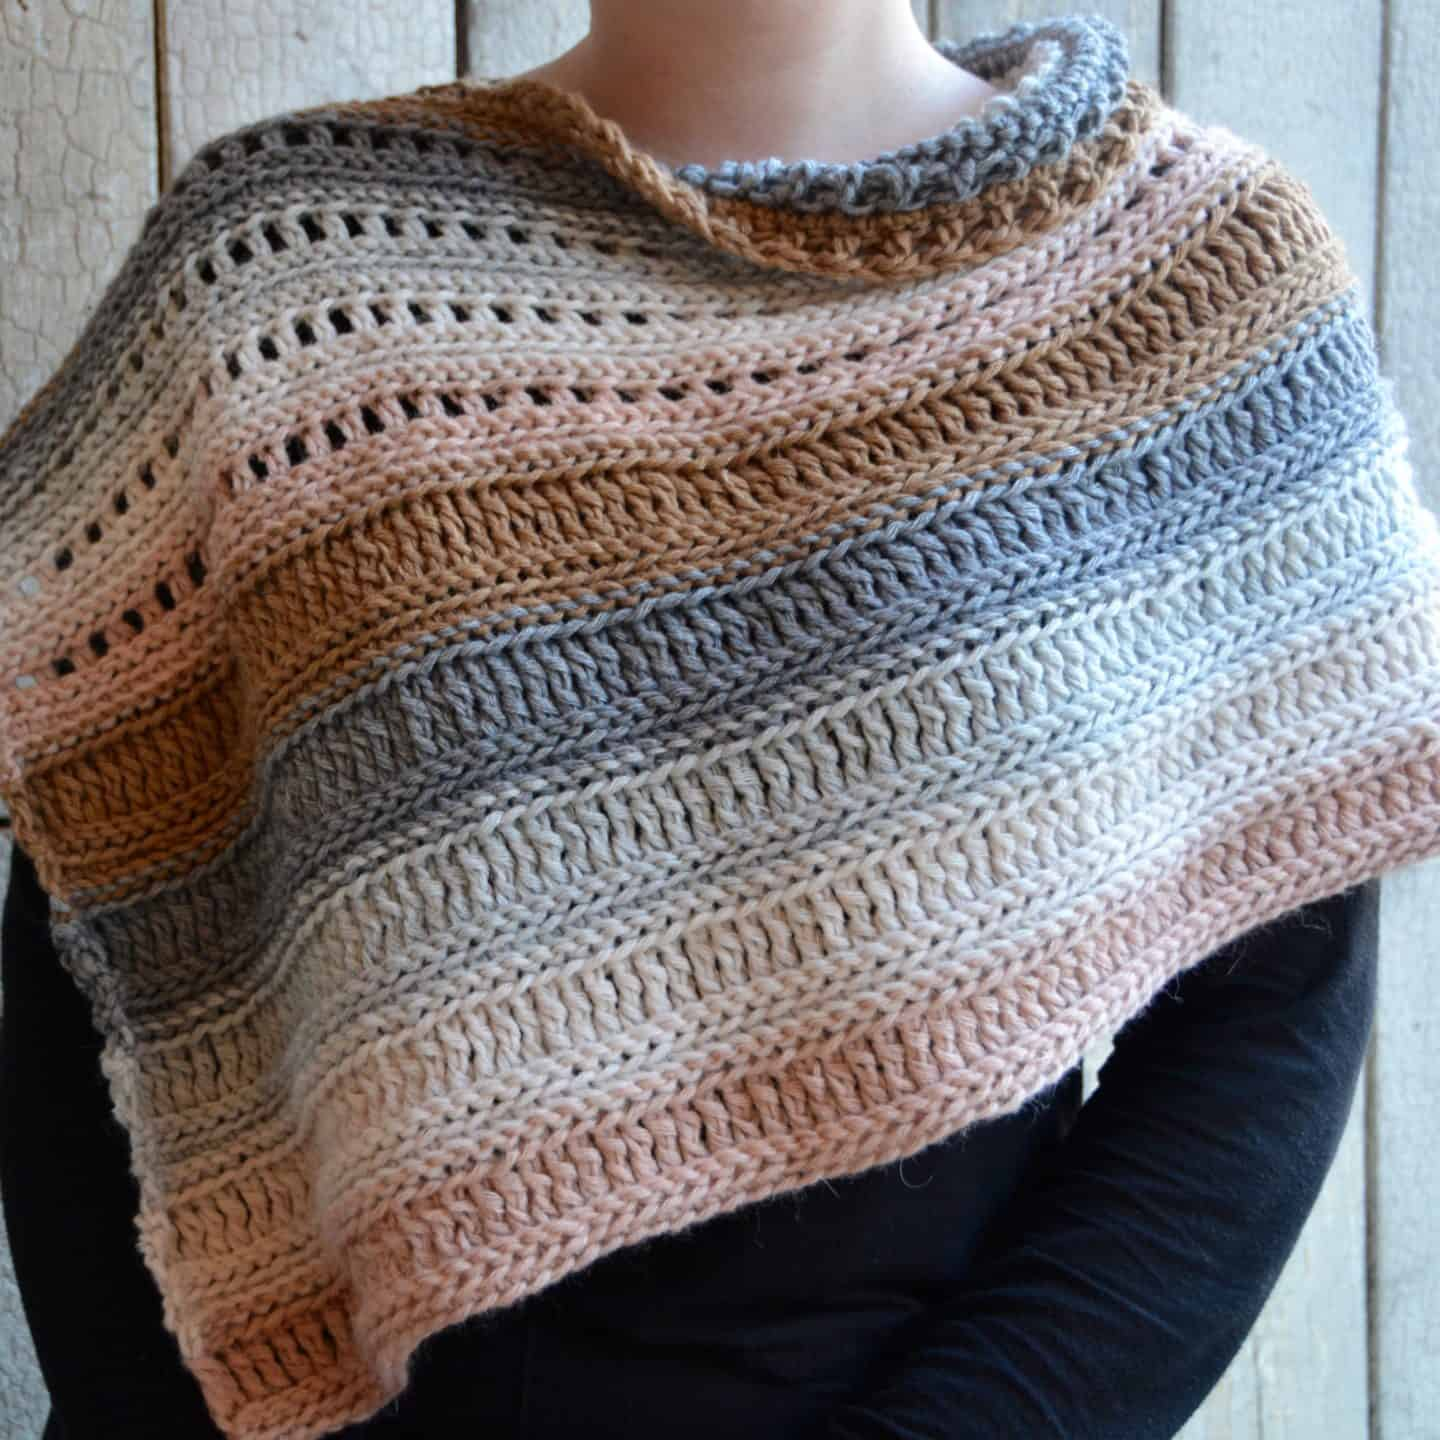 Learn to crochet the Coffee Shop Wrap with a free crochet poncho pattern